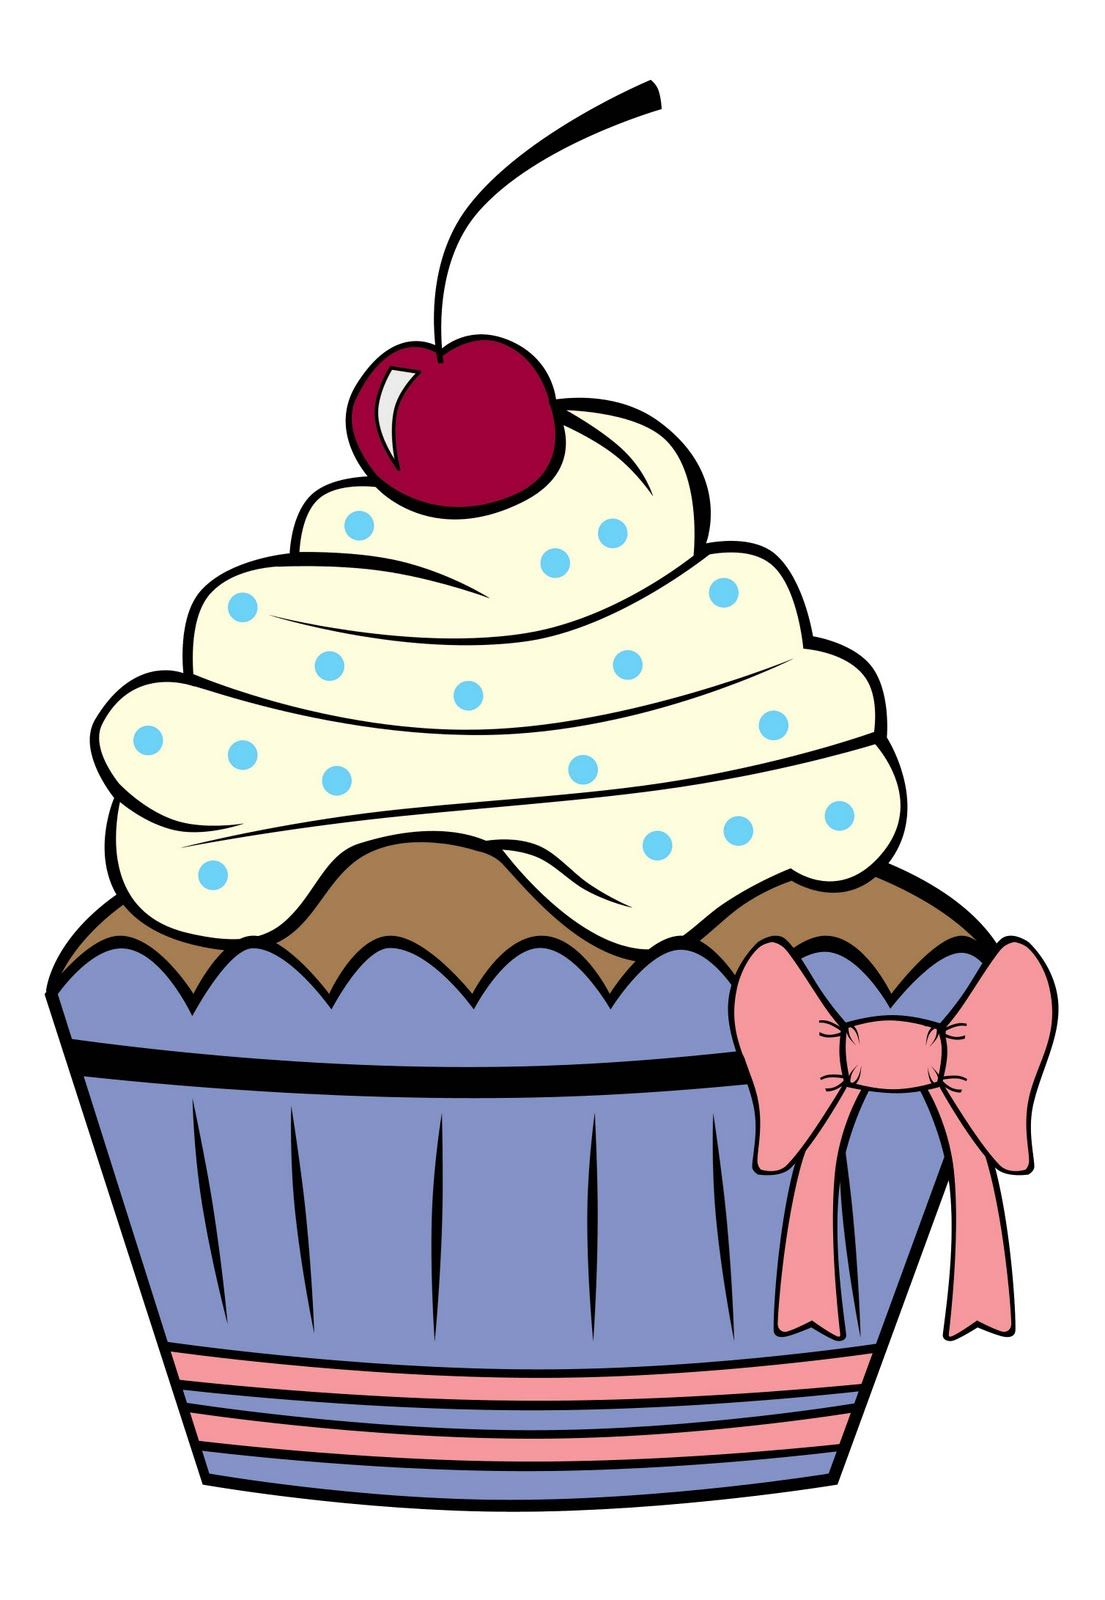 April clipart cupcake. Outline clip art cartoon